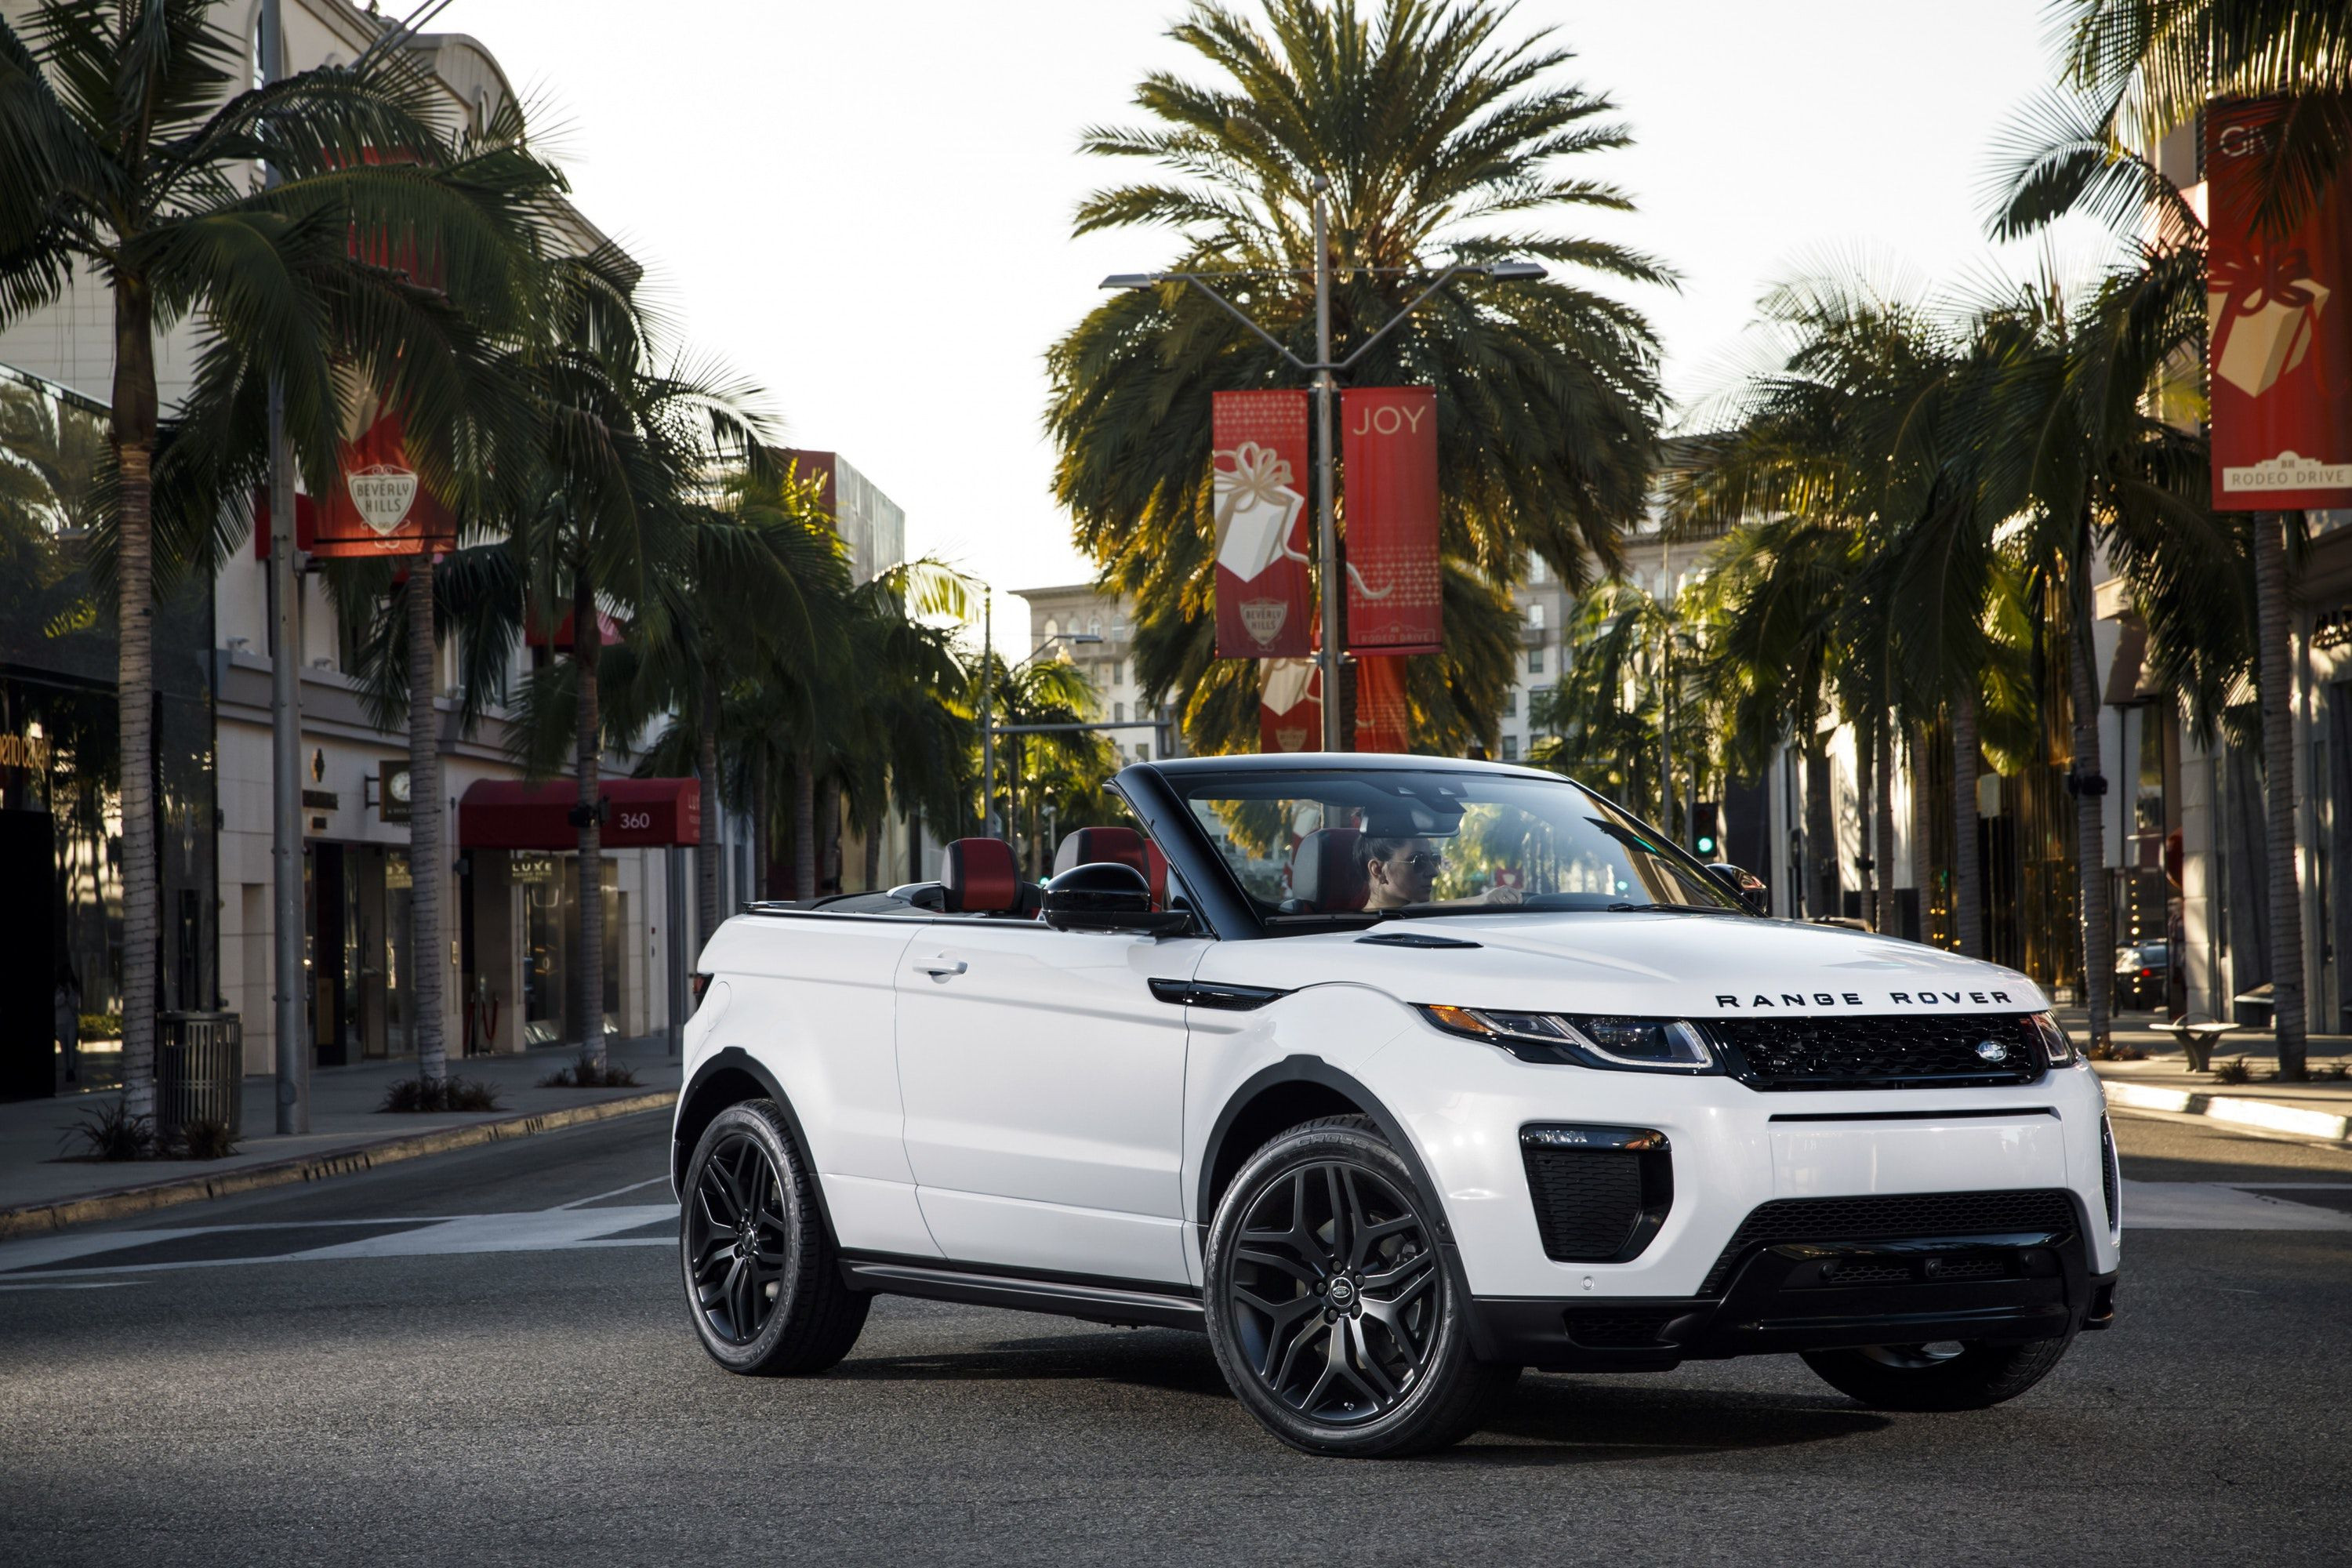 White Range Rover Evoque convertible driving through the city